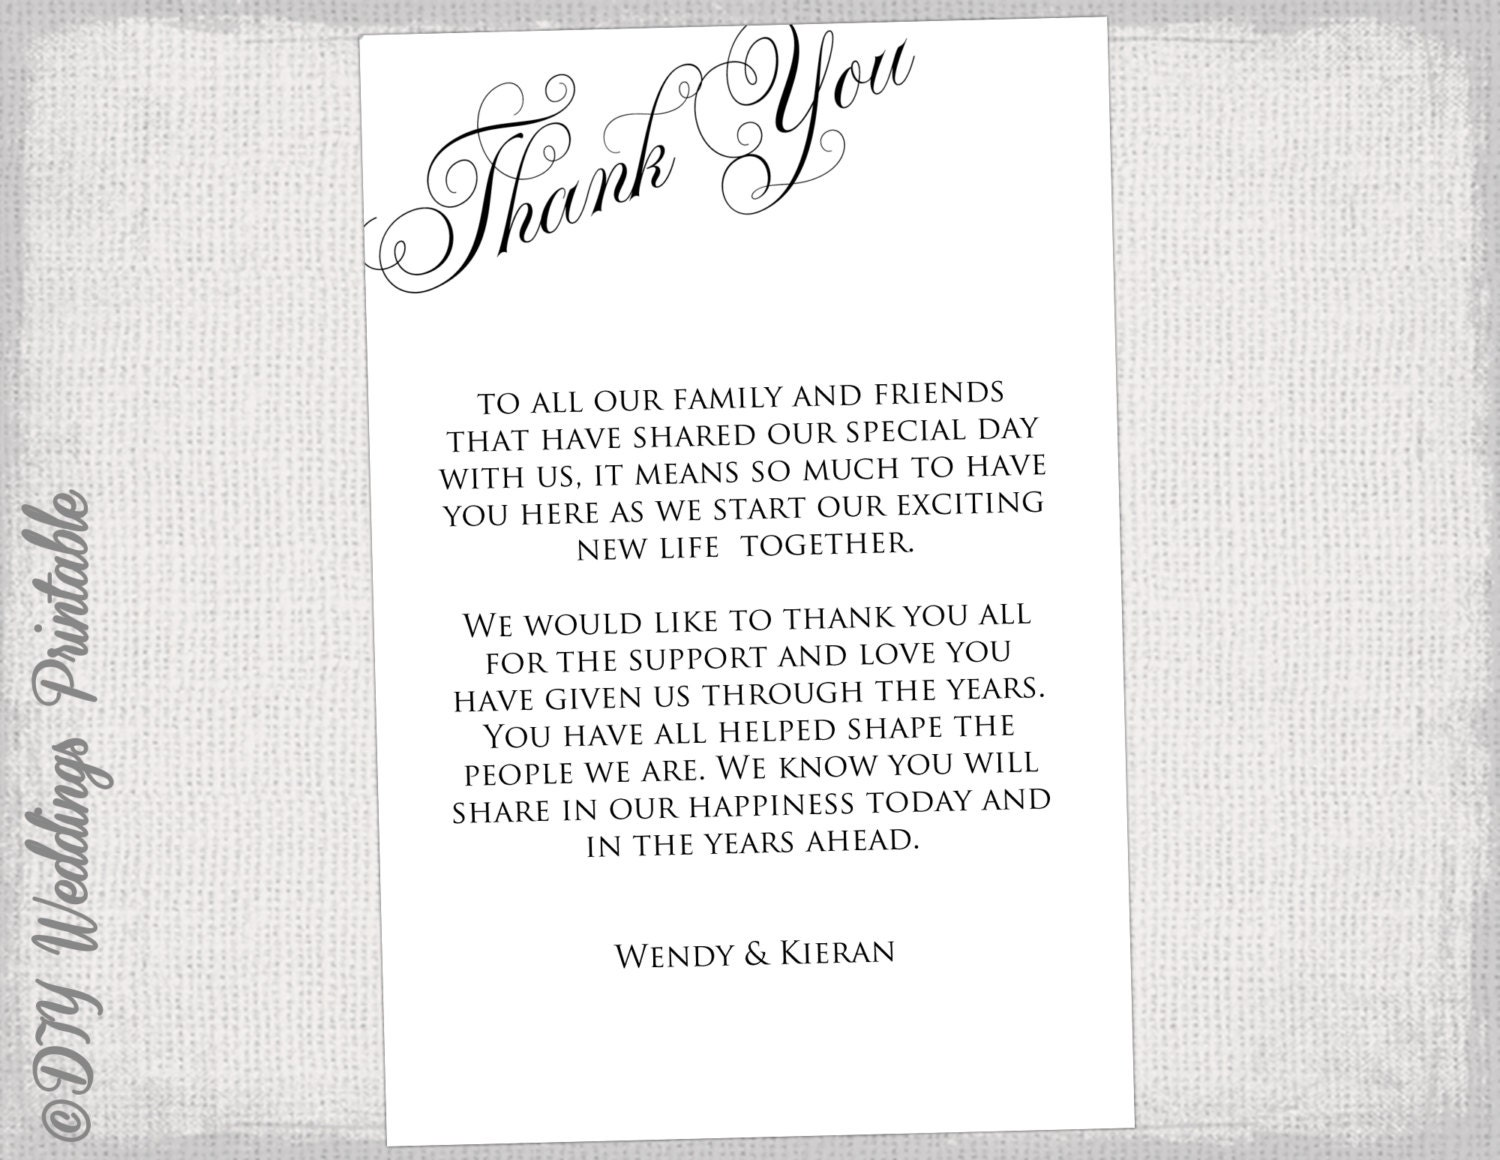 printable thank you card template black white wedding thank. Black Bedroom Furniture Sets. Home Design Ideas